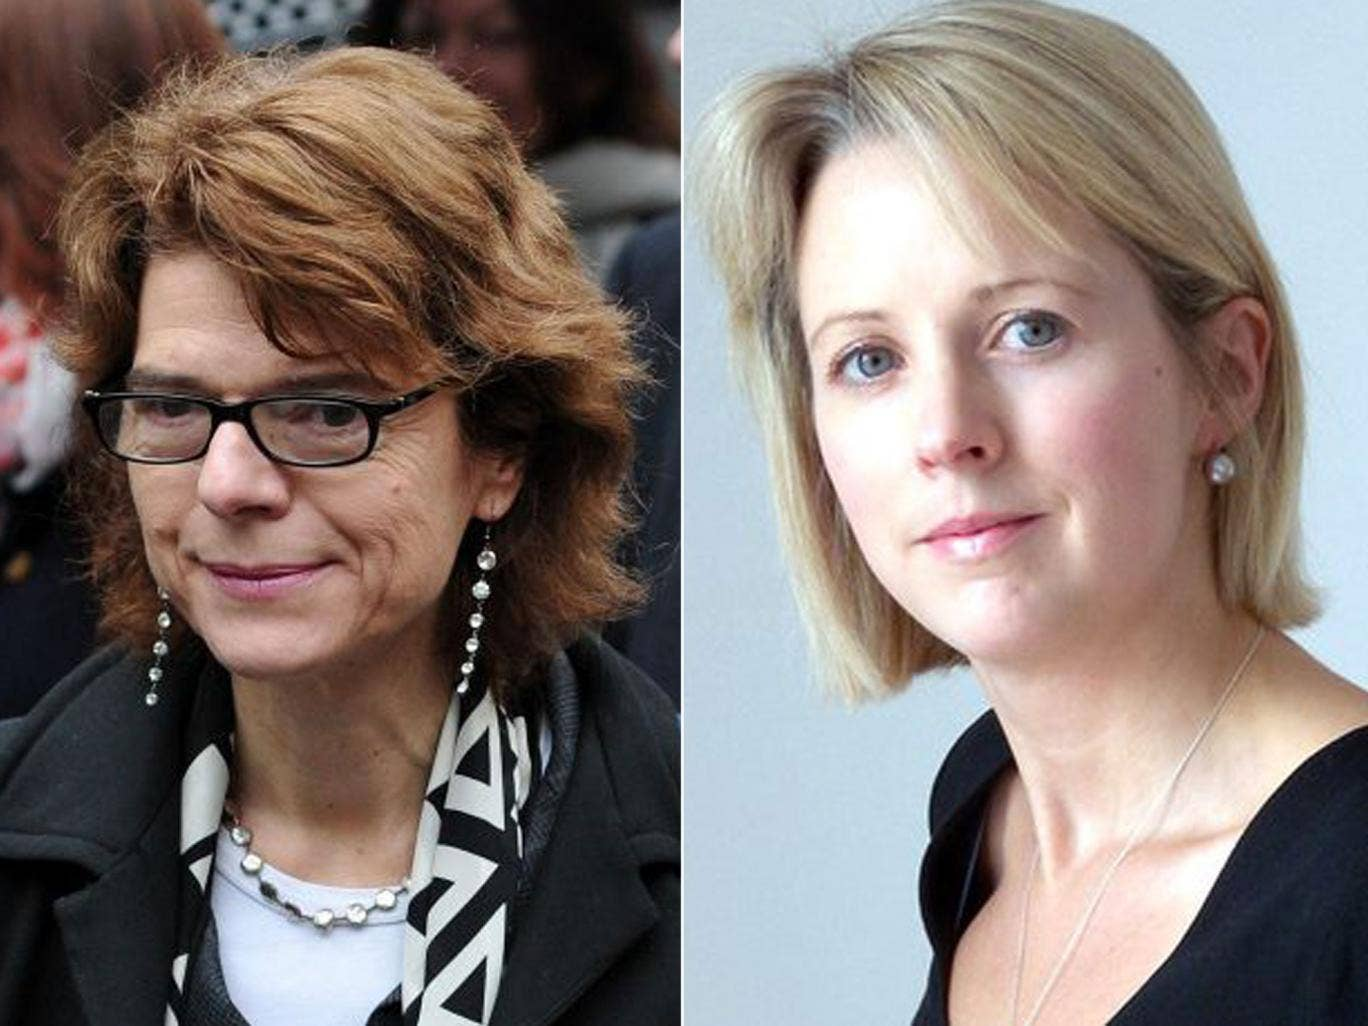 Vicky Pryce and Isabel Oakeshott